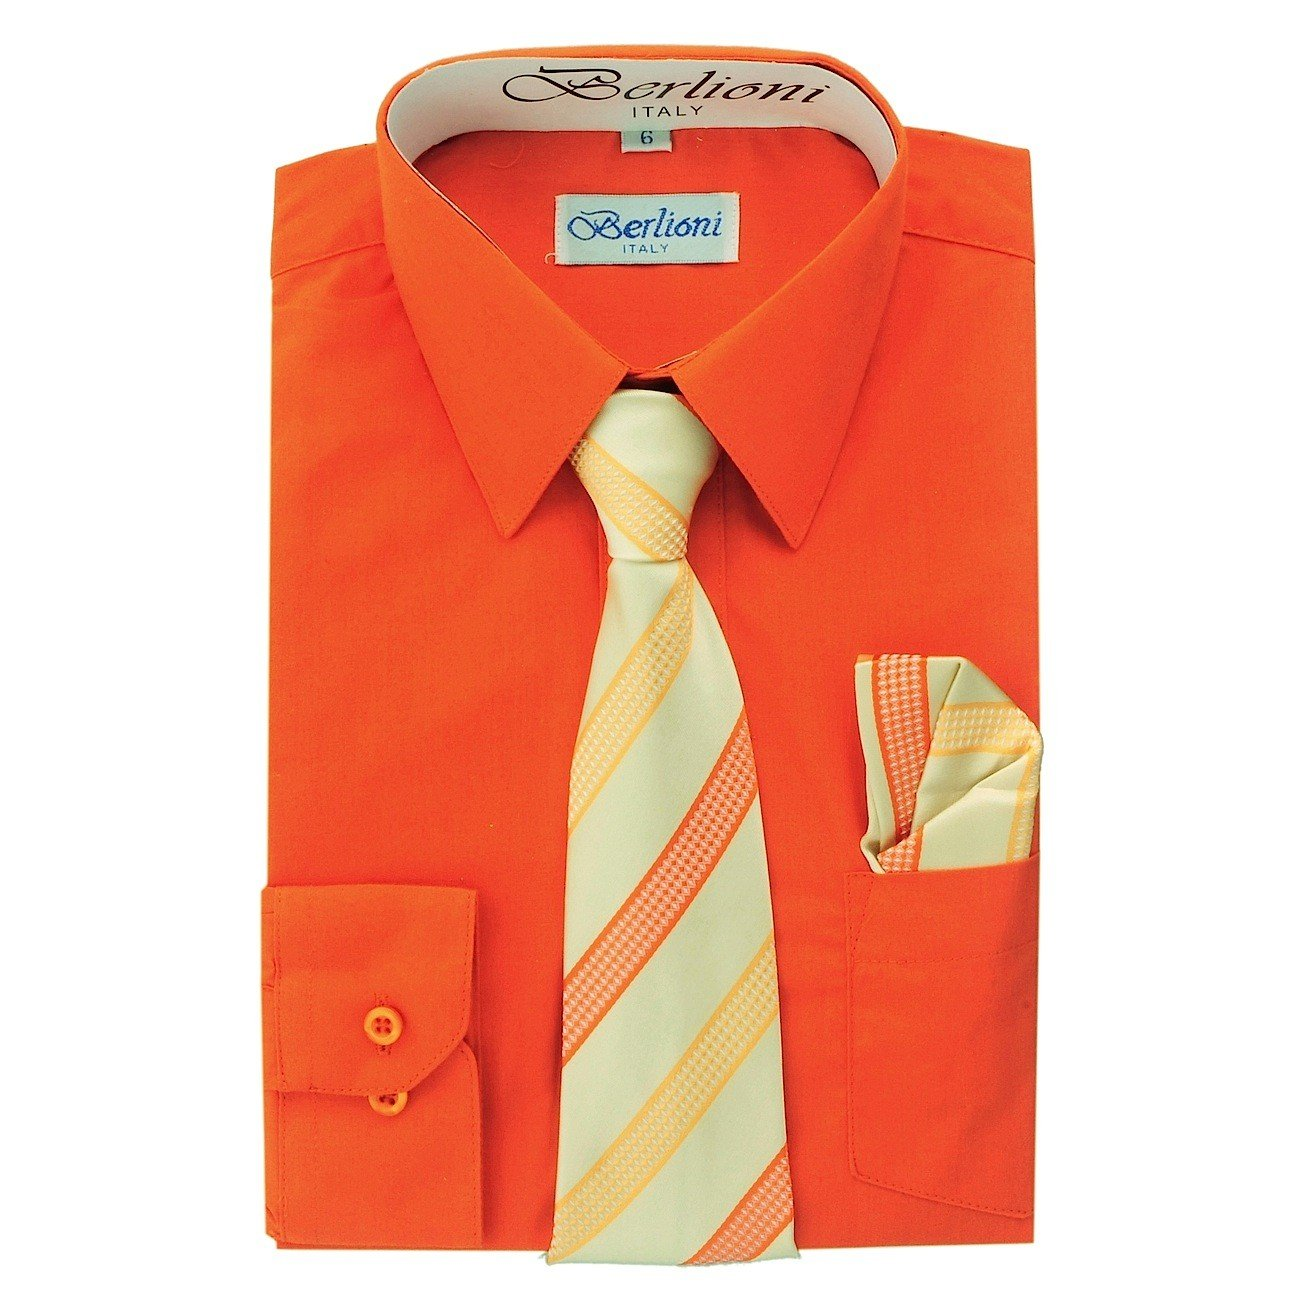 Many Color and Pattern combinations N-700s and Hanky Set Berlioni Boys Dress Shirt Necktie